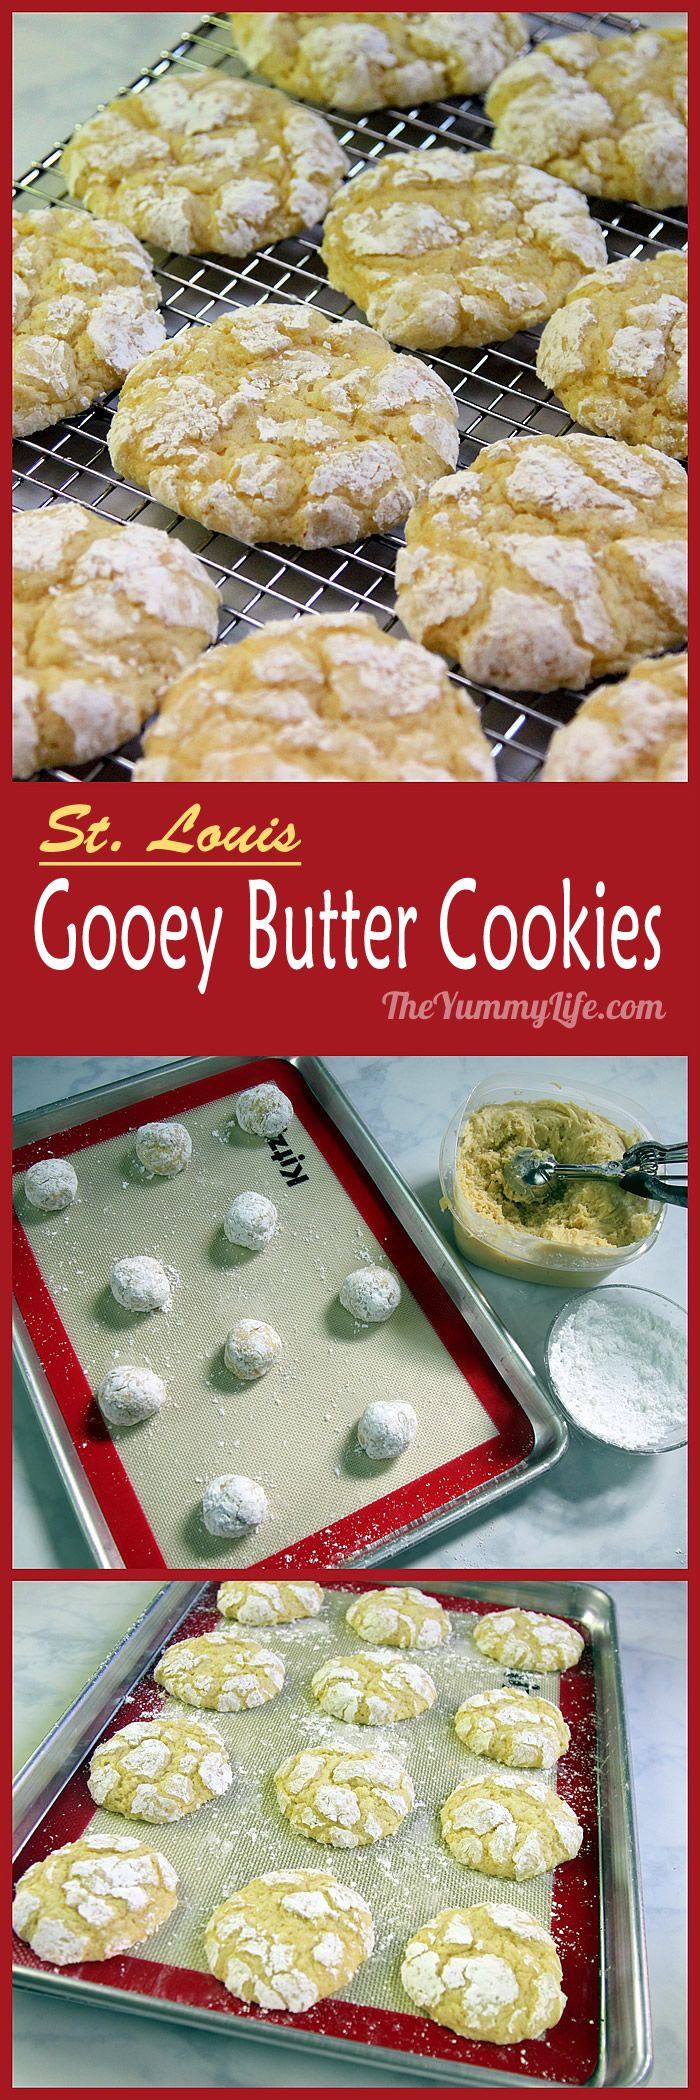 Inspired by the popular St. Louis Gooey Butter Cake, this recipe has the same taste in a melt-in-your-mouth soft cookie. From TheYummyLife.com